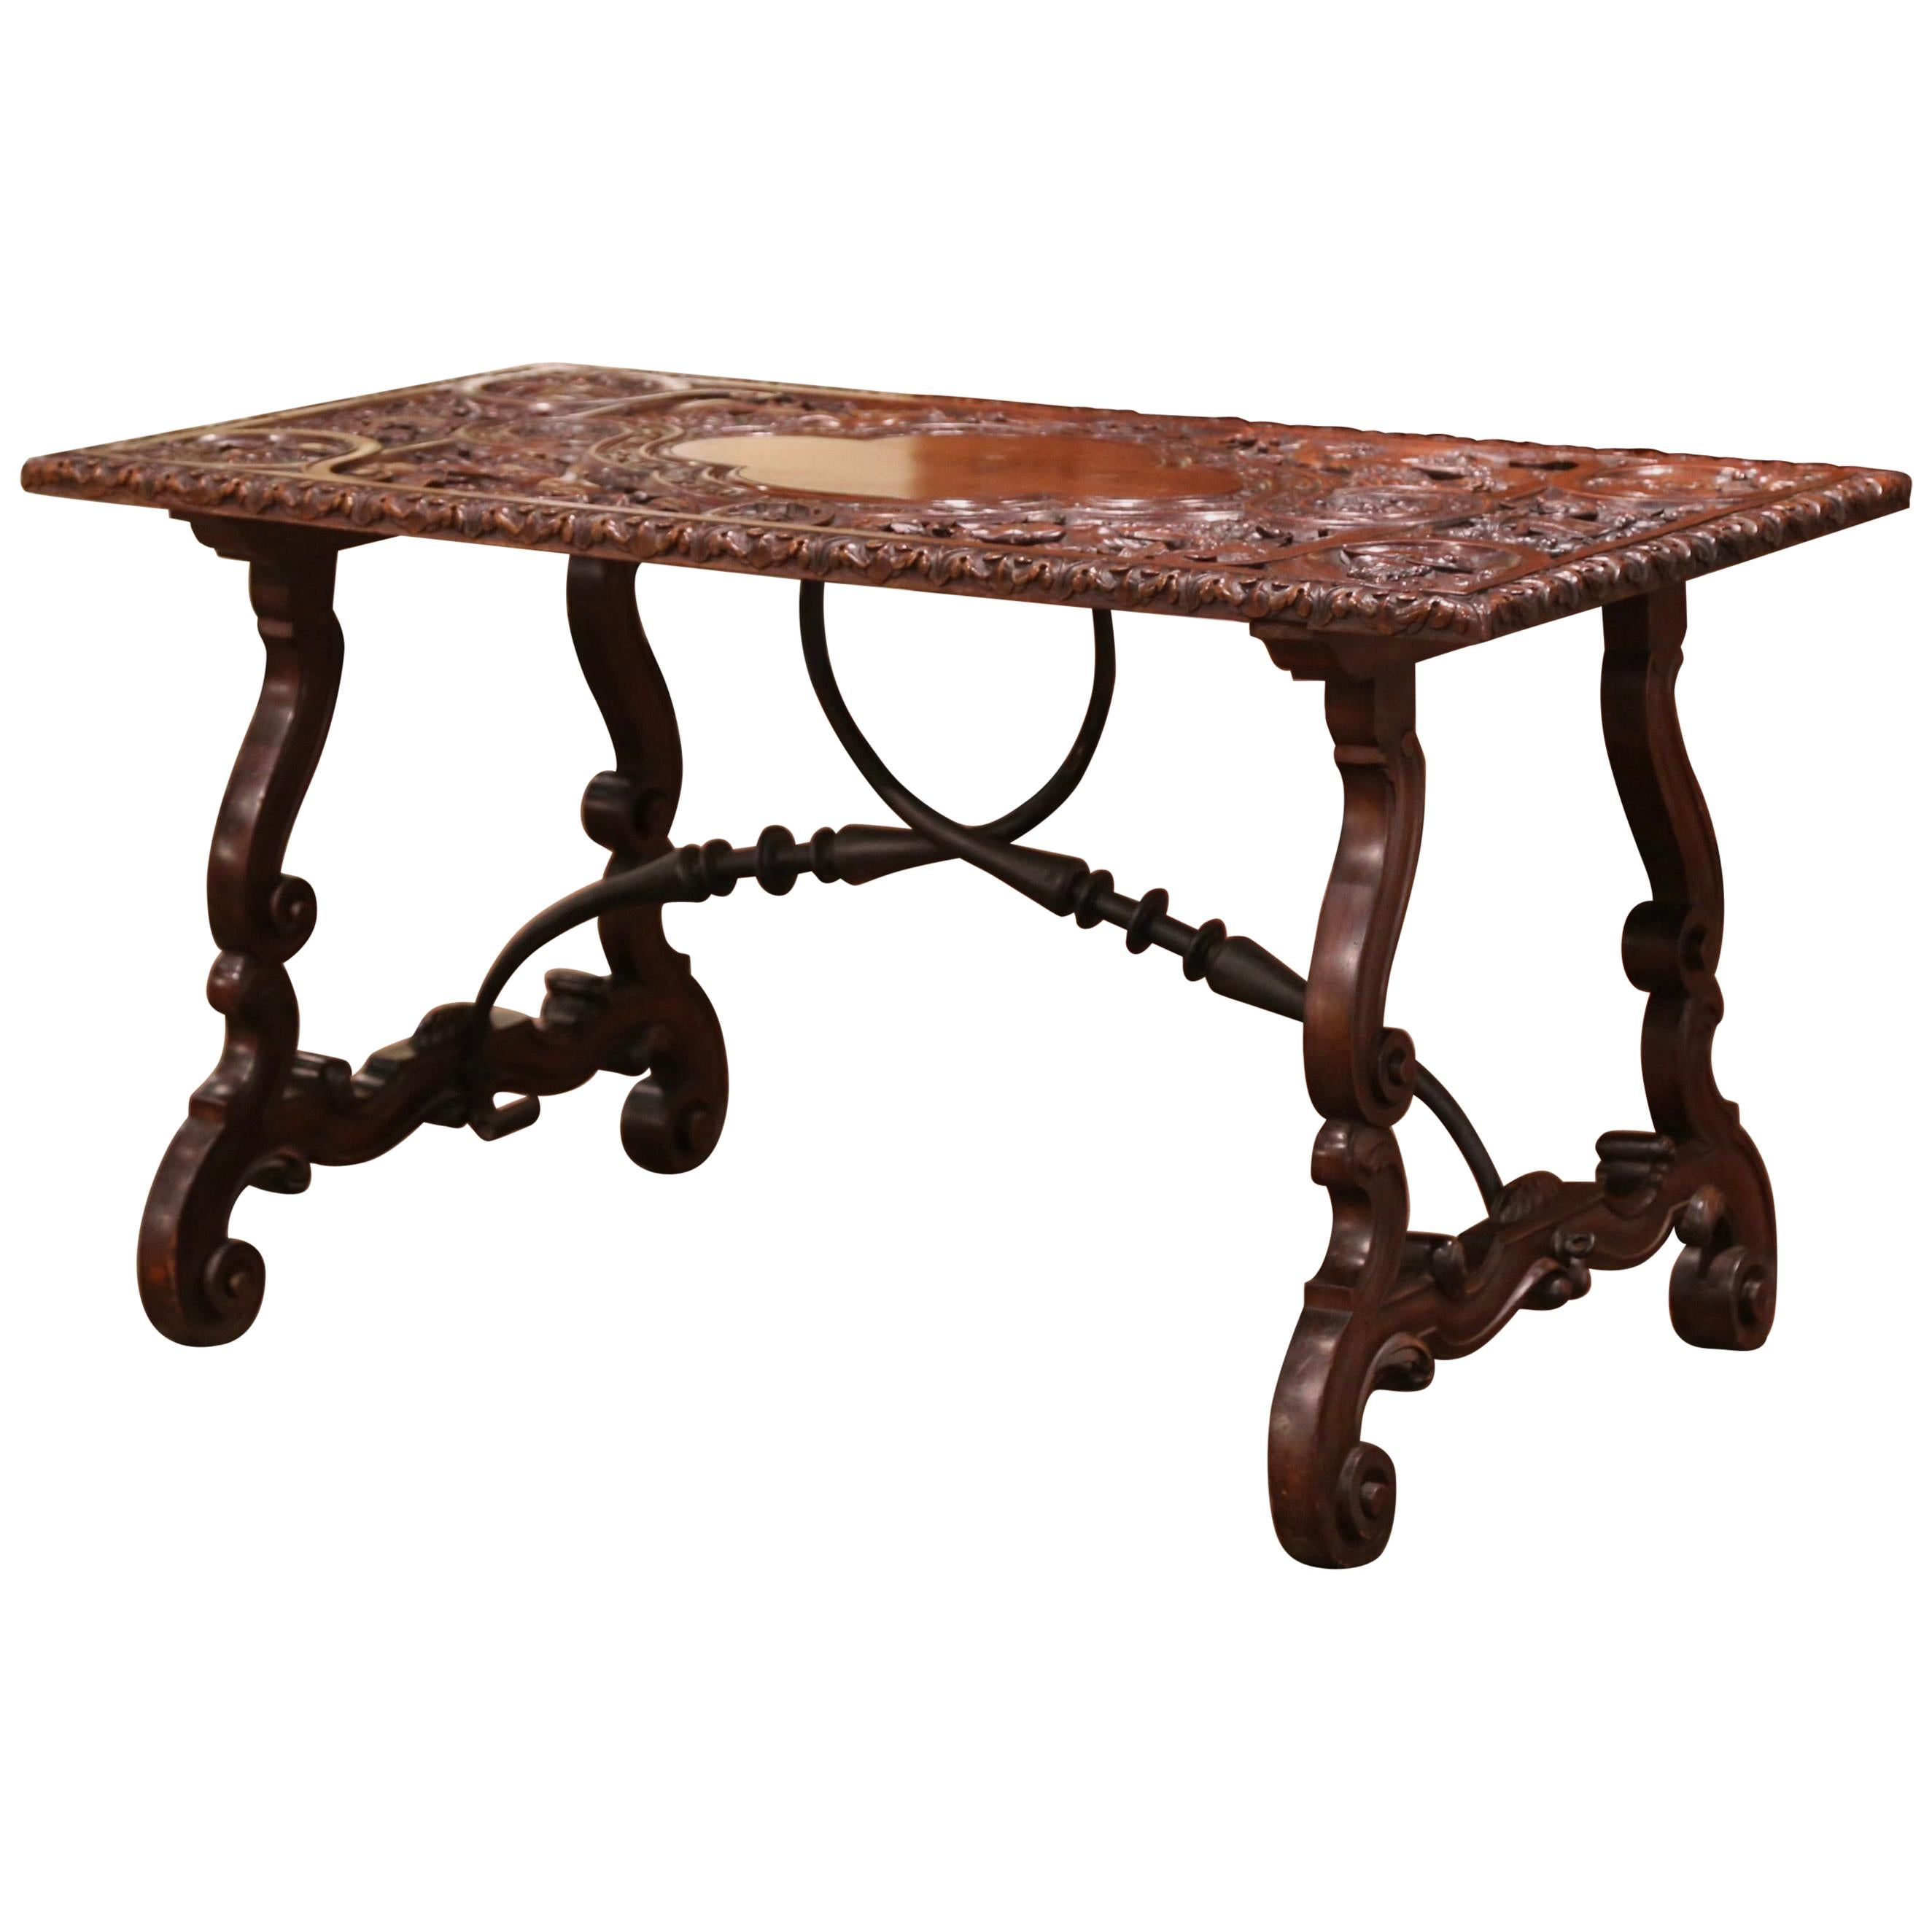 19th Century Spanish Carved Walnut and Wrought Iron Console Center Table